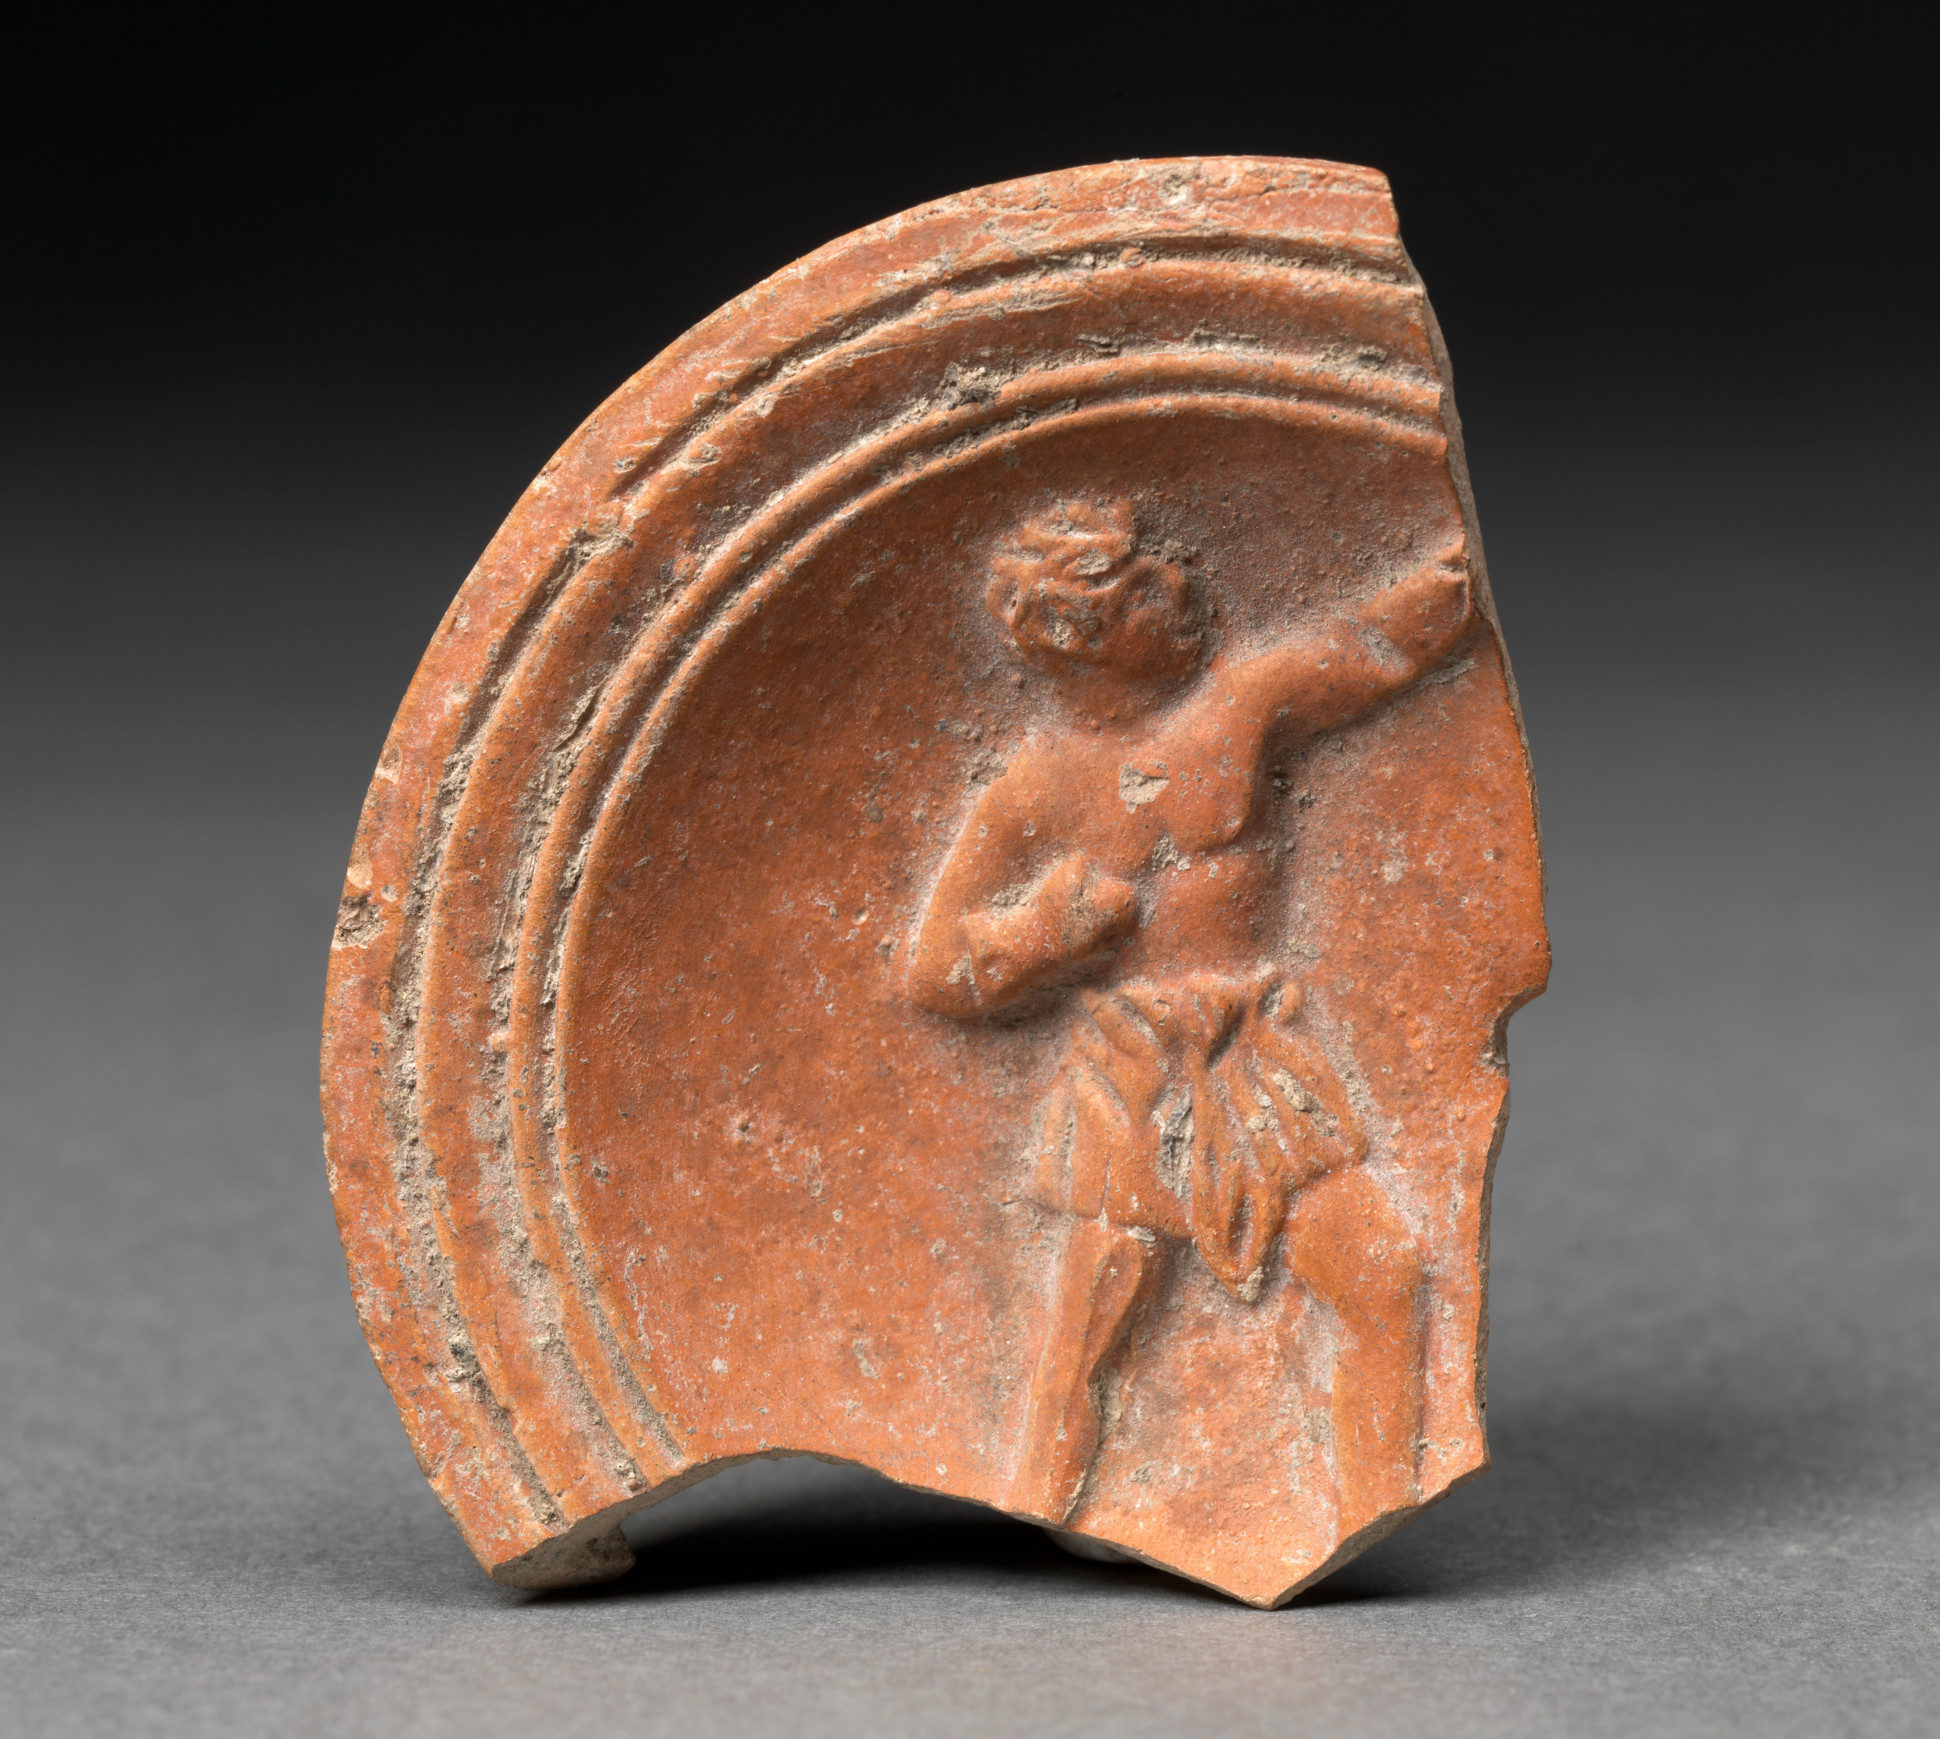 Unknown (Roman), Fragment from an oil lamp with boxer motif, 40-100 CE. Terracotta, 2 1/4 x 1 15/16 x 3/8 in. Gift of Charles Caryl Coleman. (28.8.7)